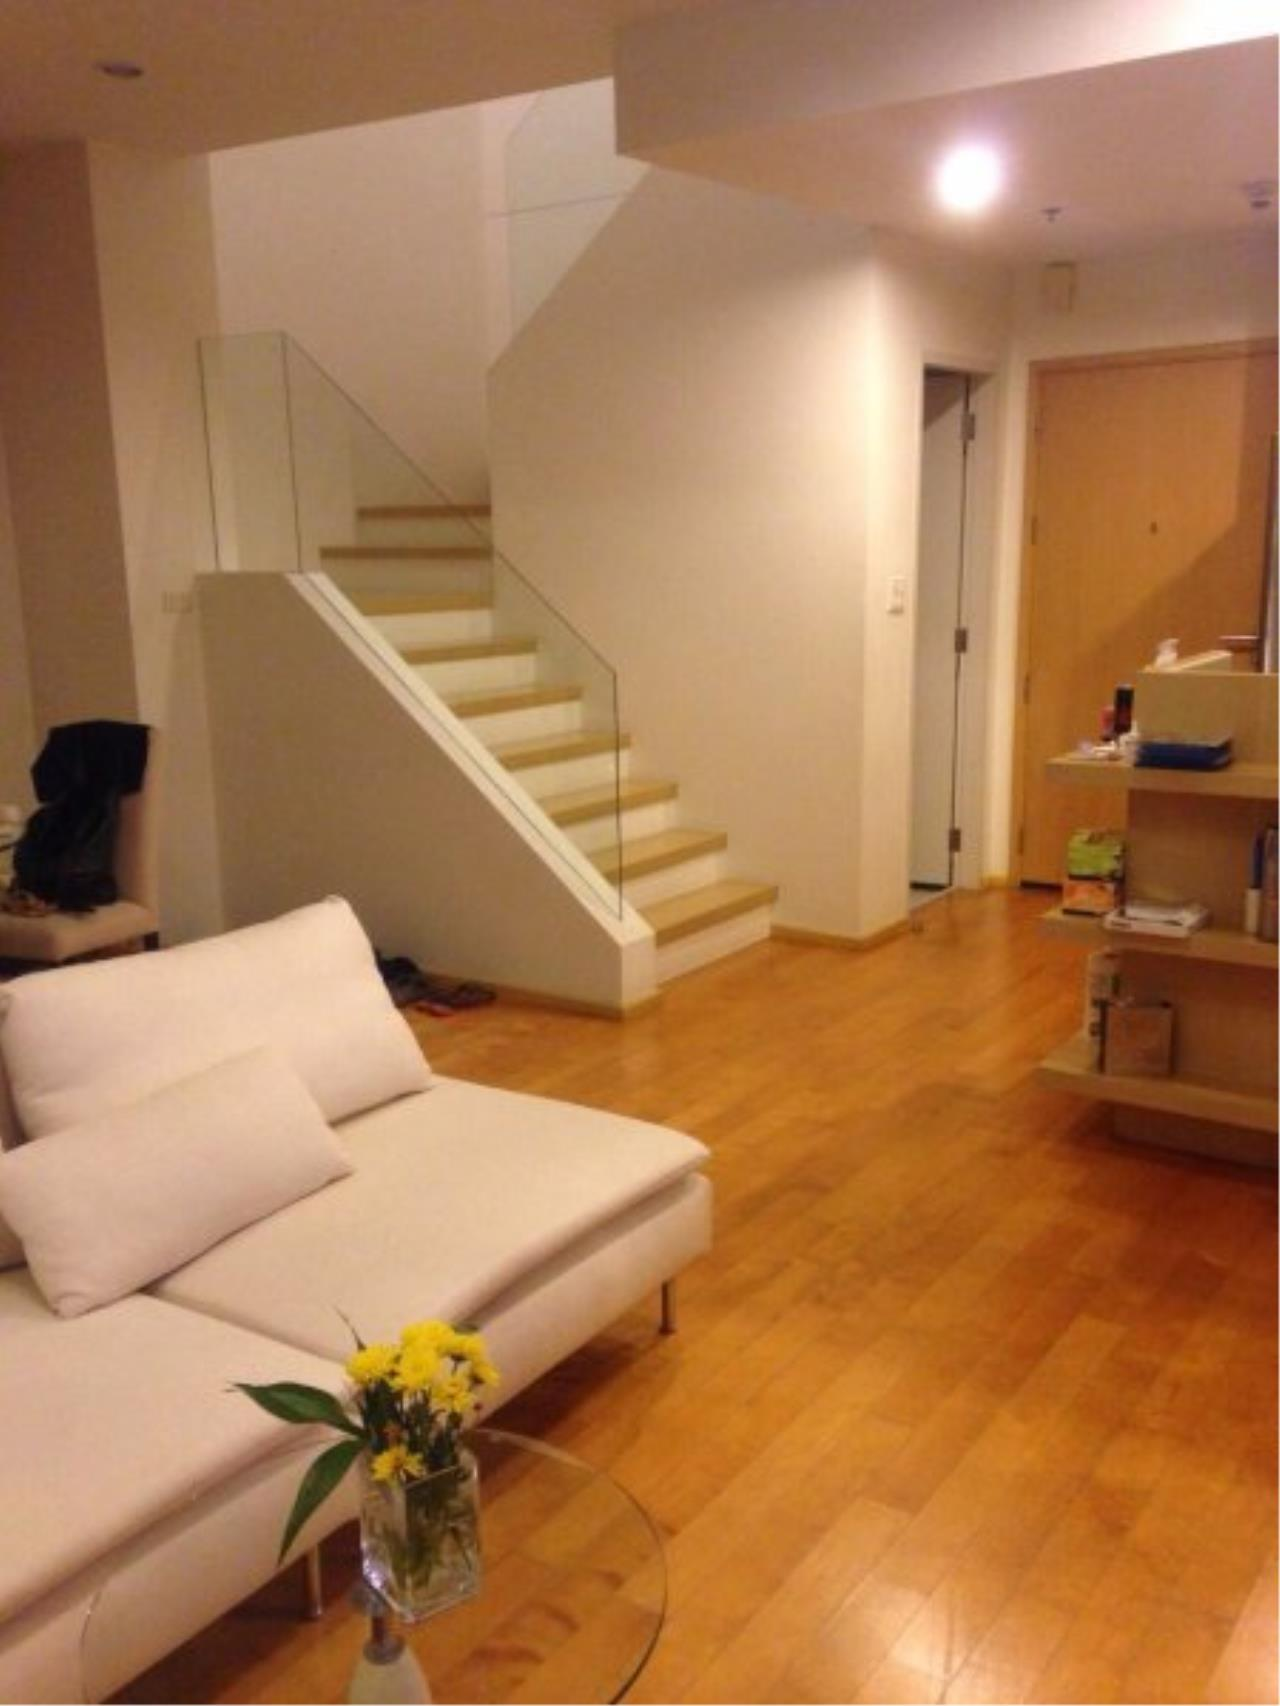 Piri Property Agency's Duplex 1 Bedroom in the Villa Ratchatewi Condo for rent on high floor 3